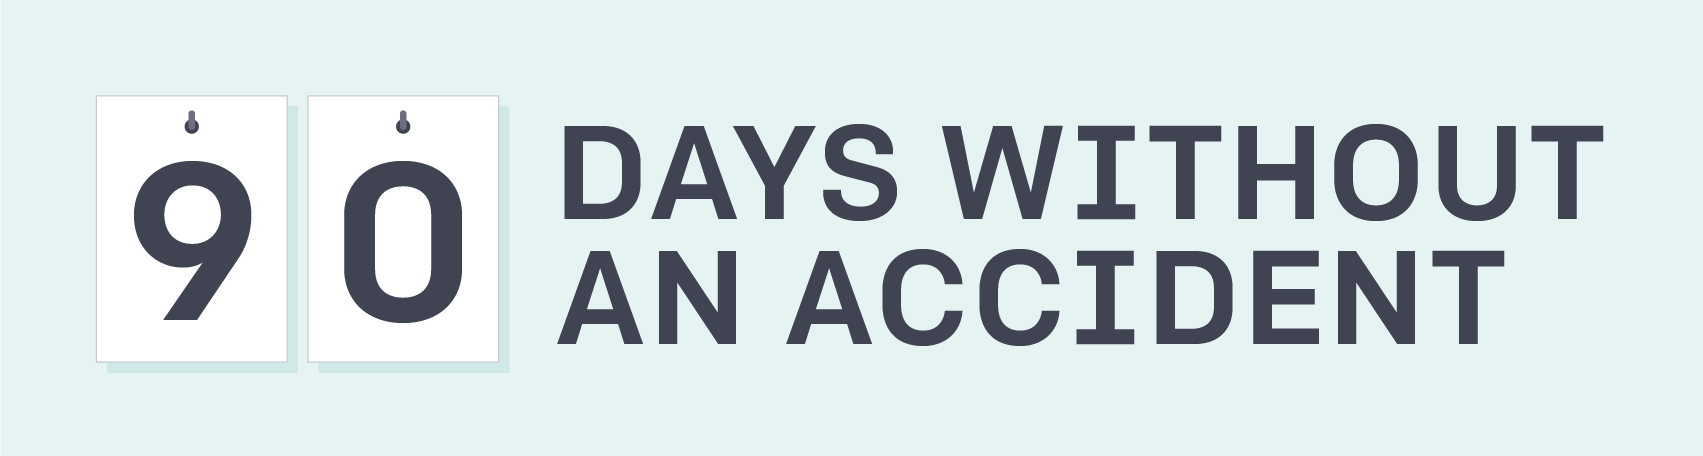 days-without-an-accident